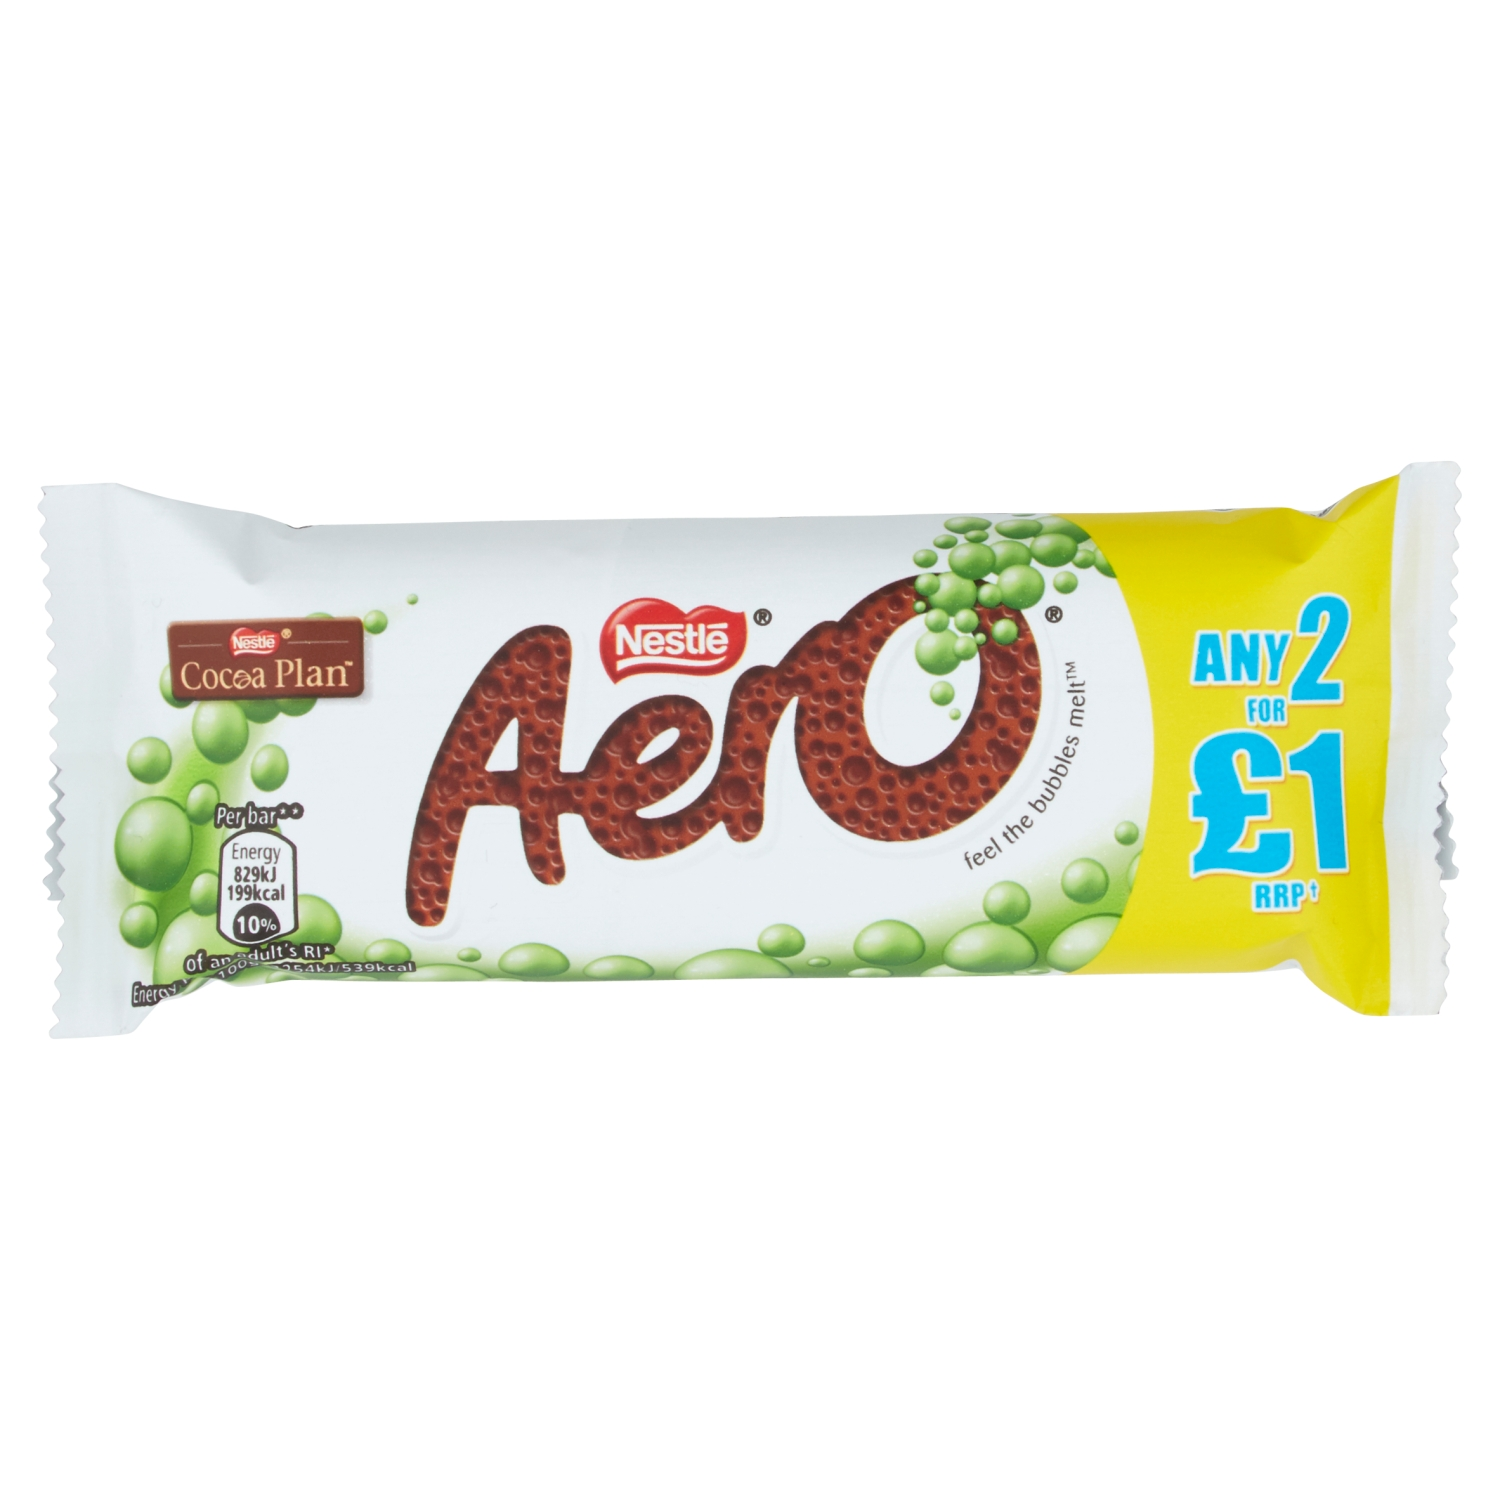 Aero Bubbly Peppermint Mint Chocolate Bar 36g PMP 2 for £1